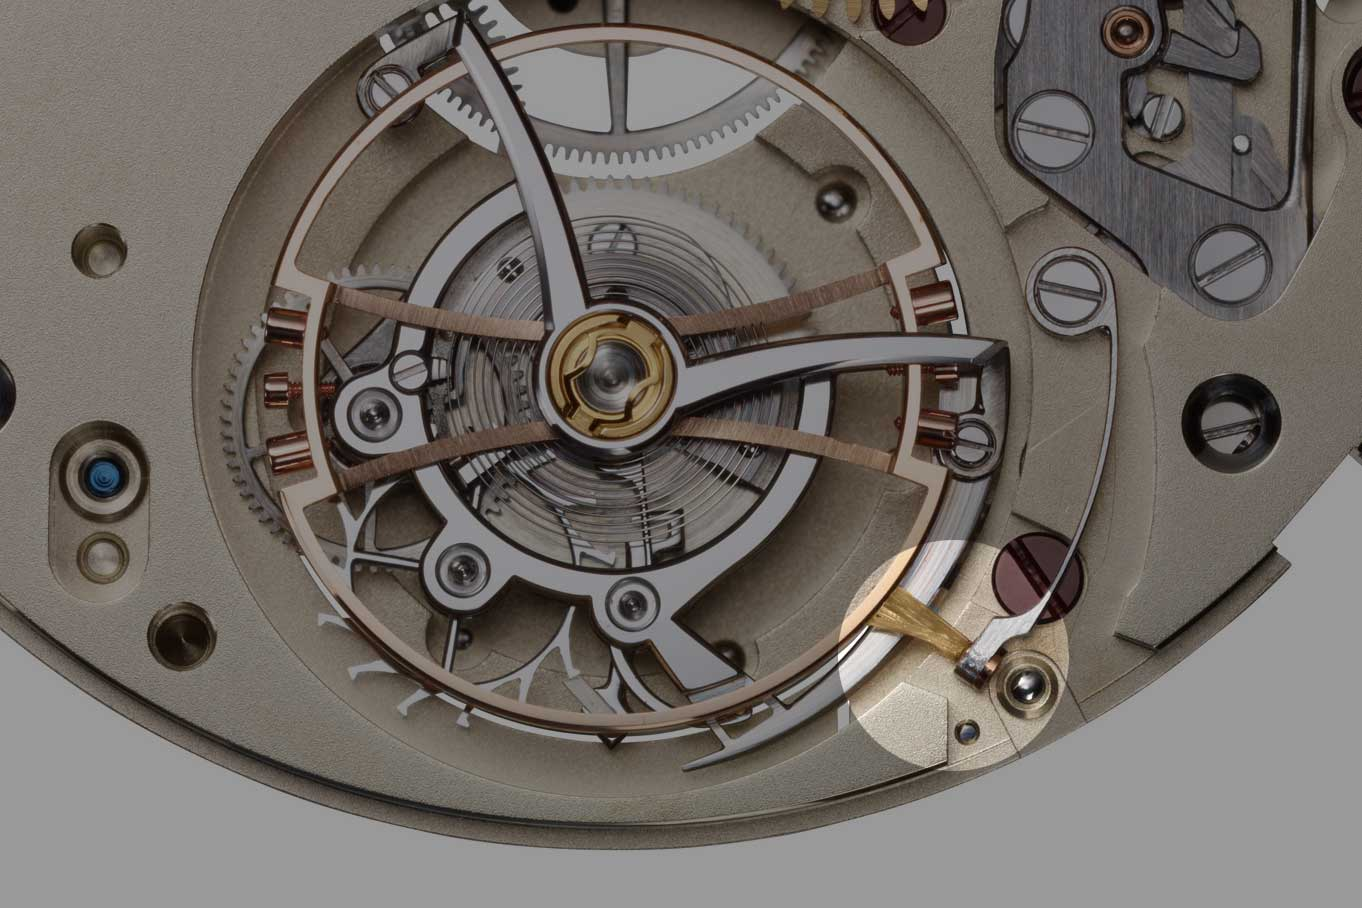 The small bunch of human hairs obtained from the head of brand CEO, Ms Christine Hutter used to arrest the balance wheel on the Moritz Grossmann Benu Tourbillon (Image: Moritz Grossmann)